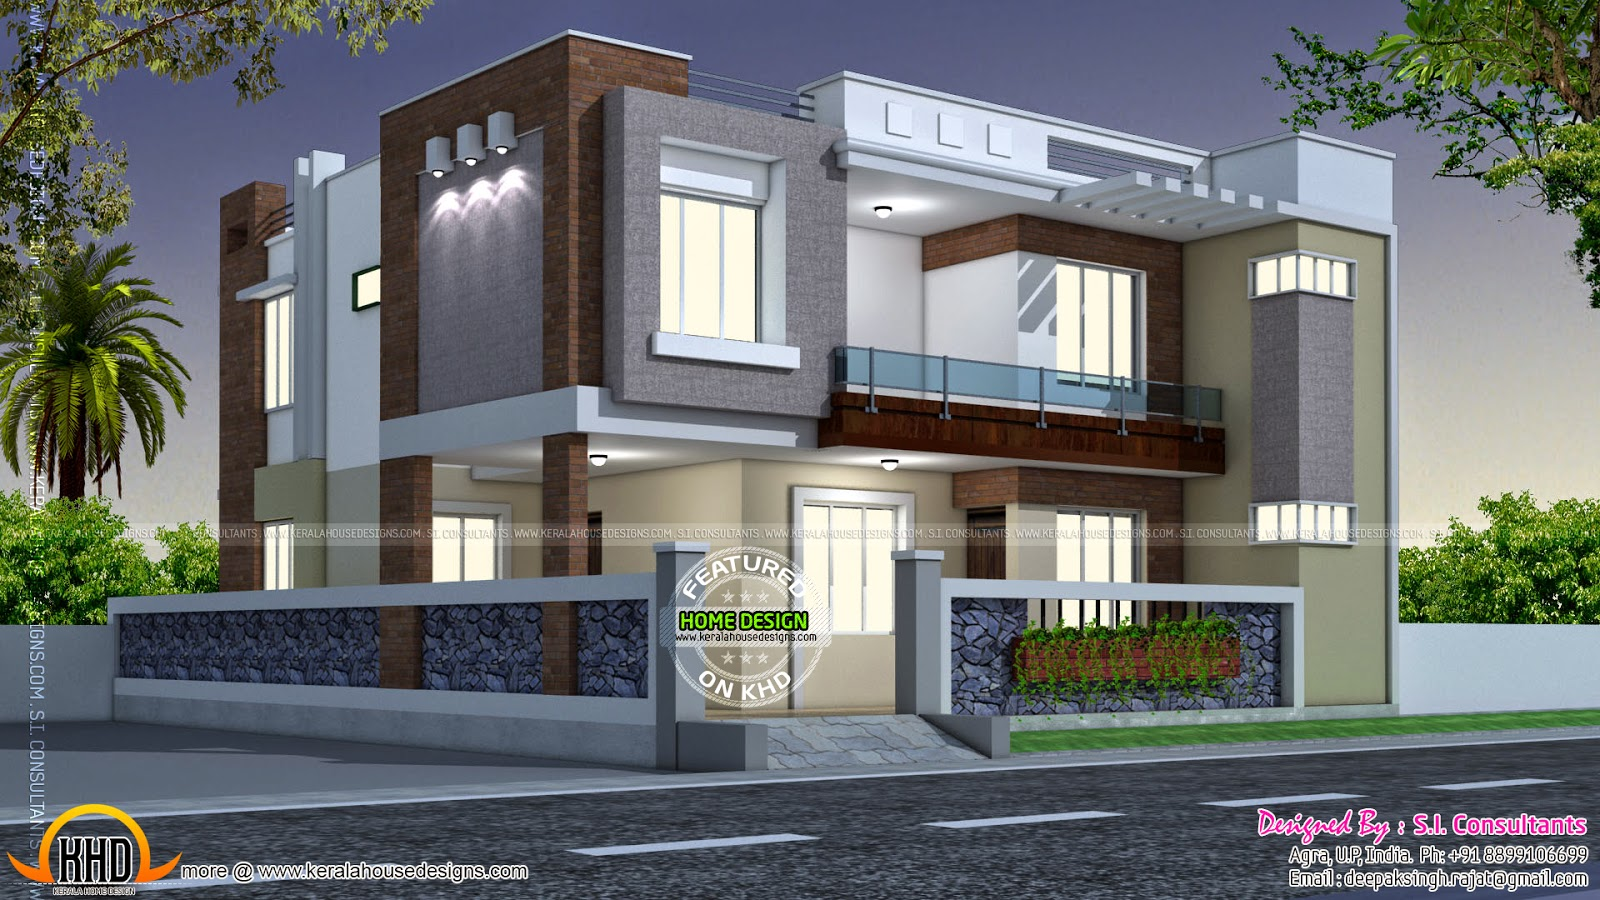 House plans and design modern house plans for india Modern home plans 2015